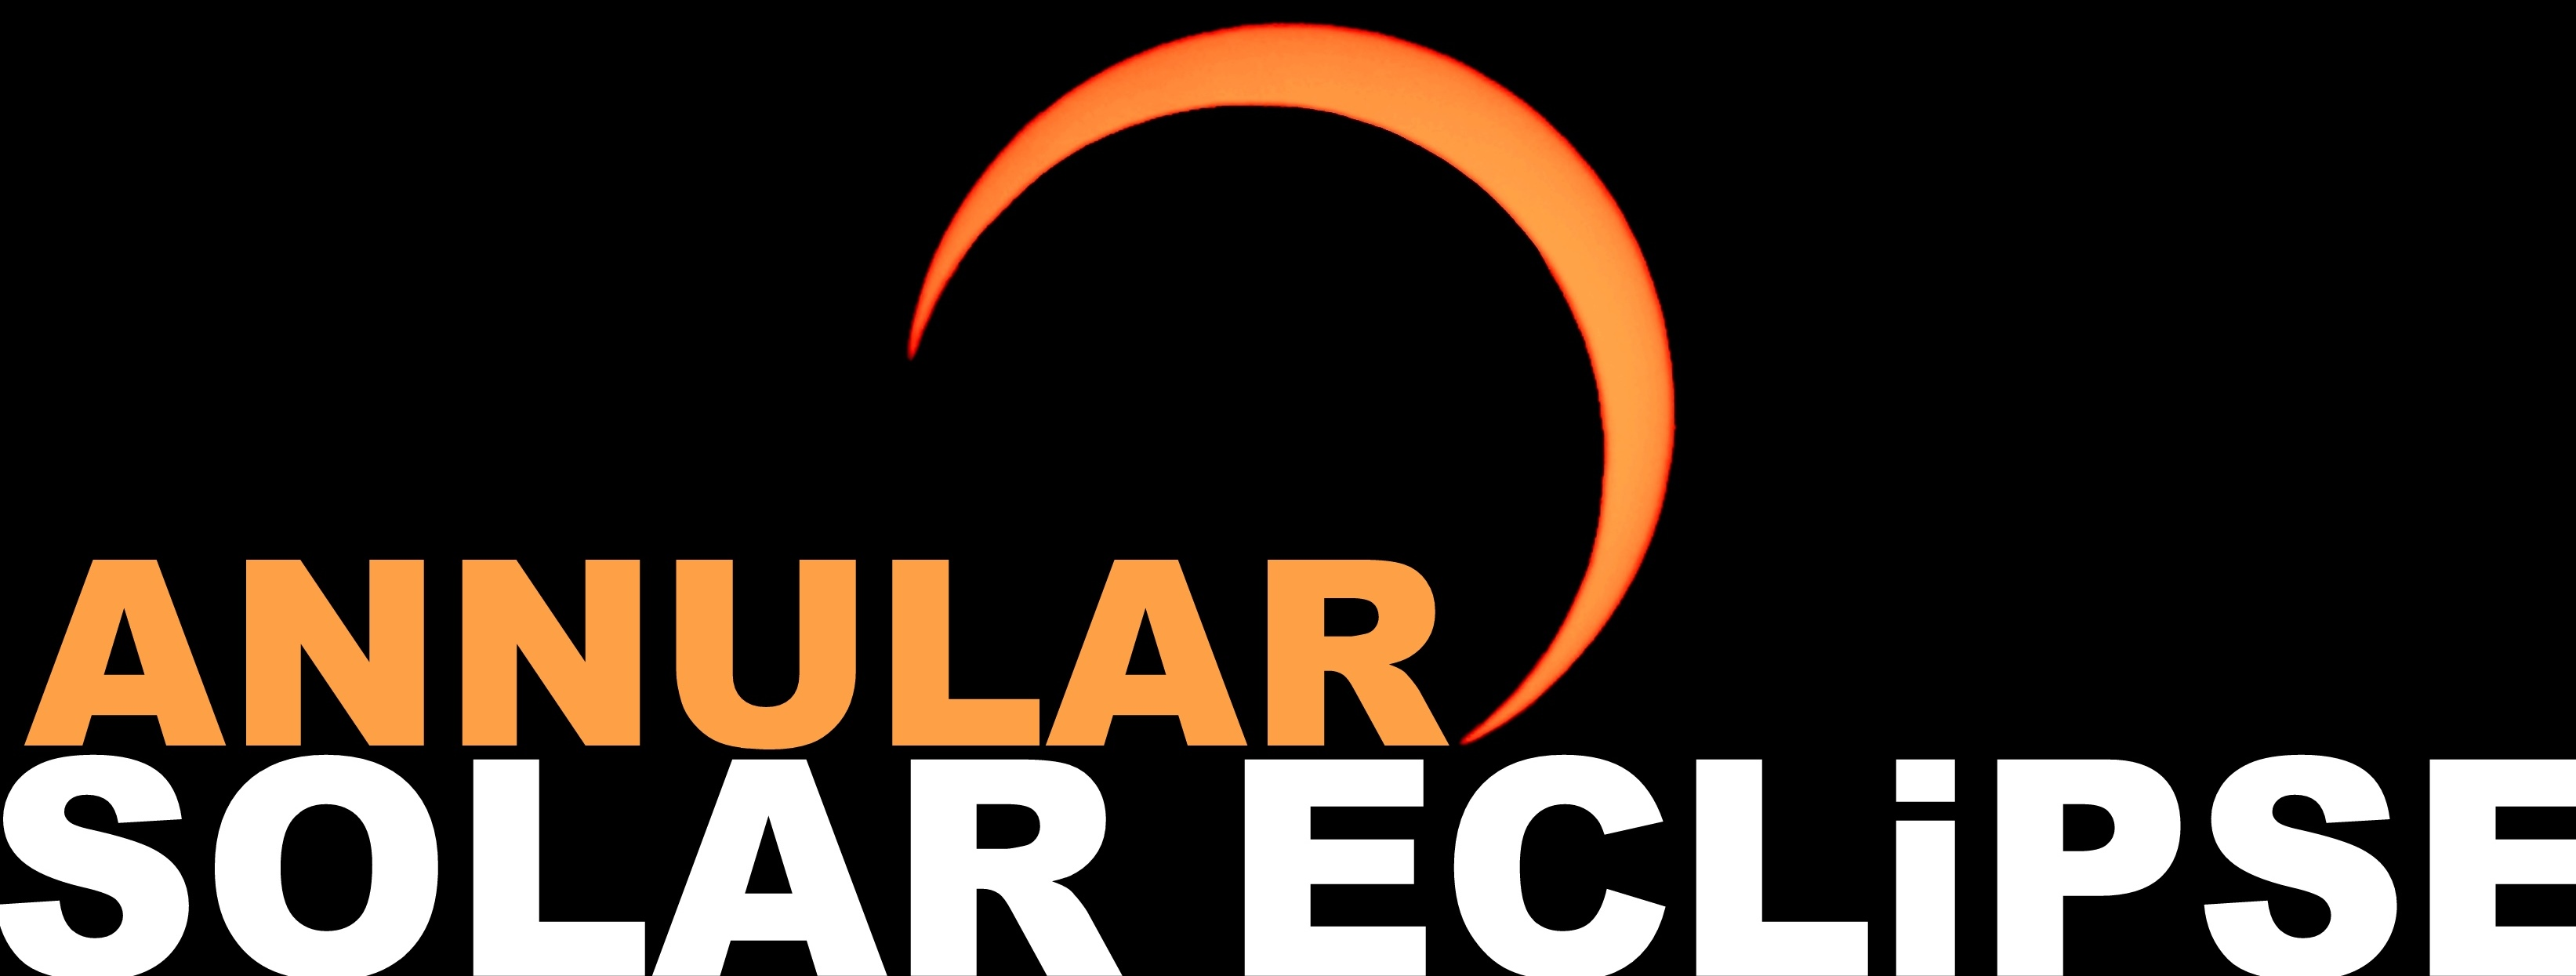 Annular solar eclipse sun moon space banner cover heading type font image photo